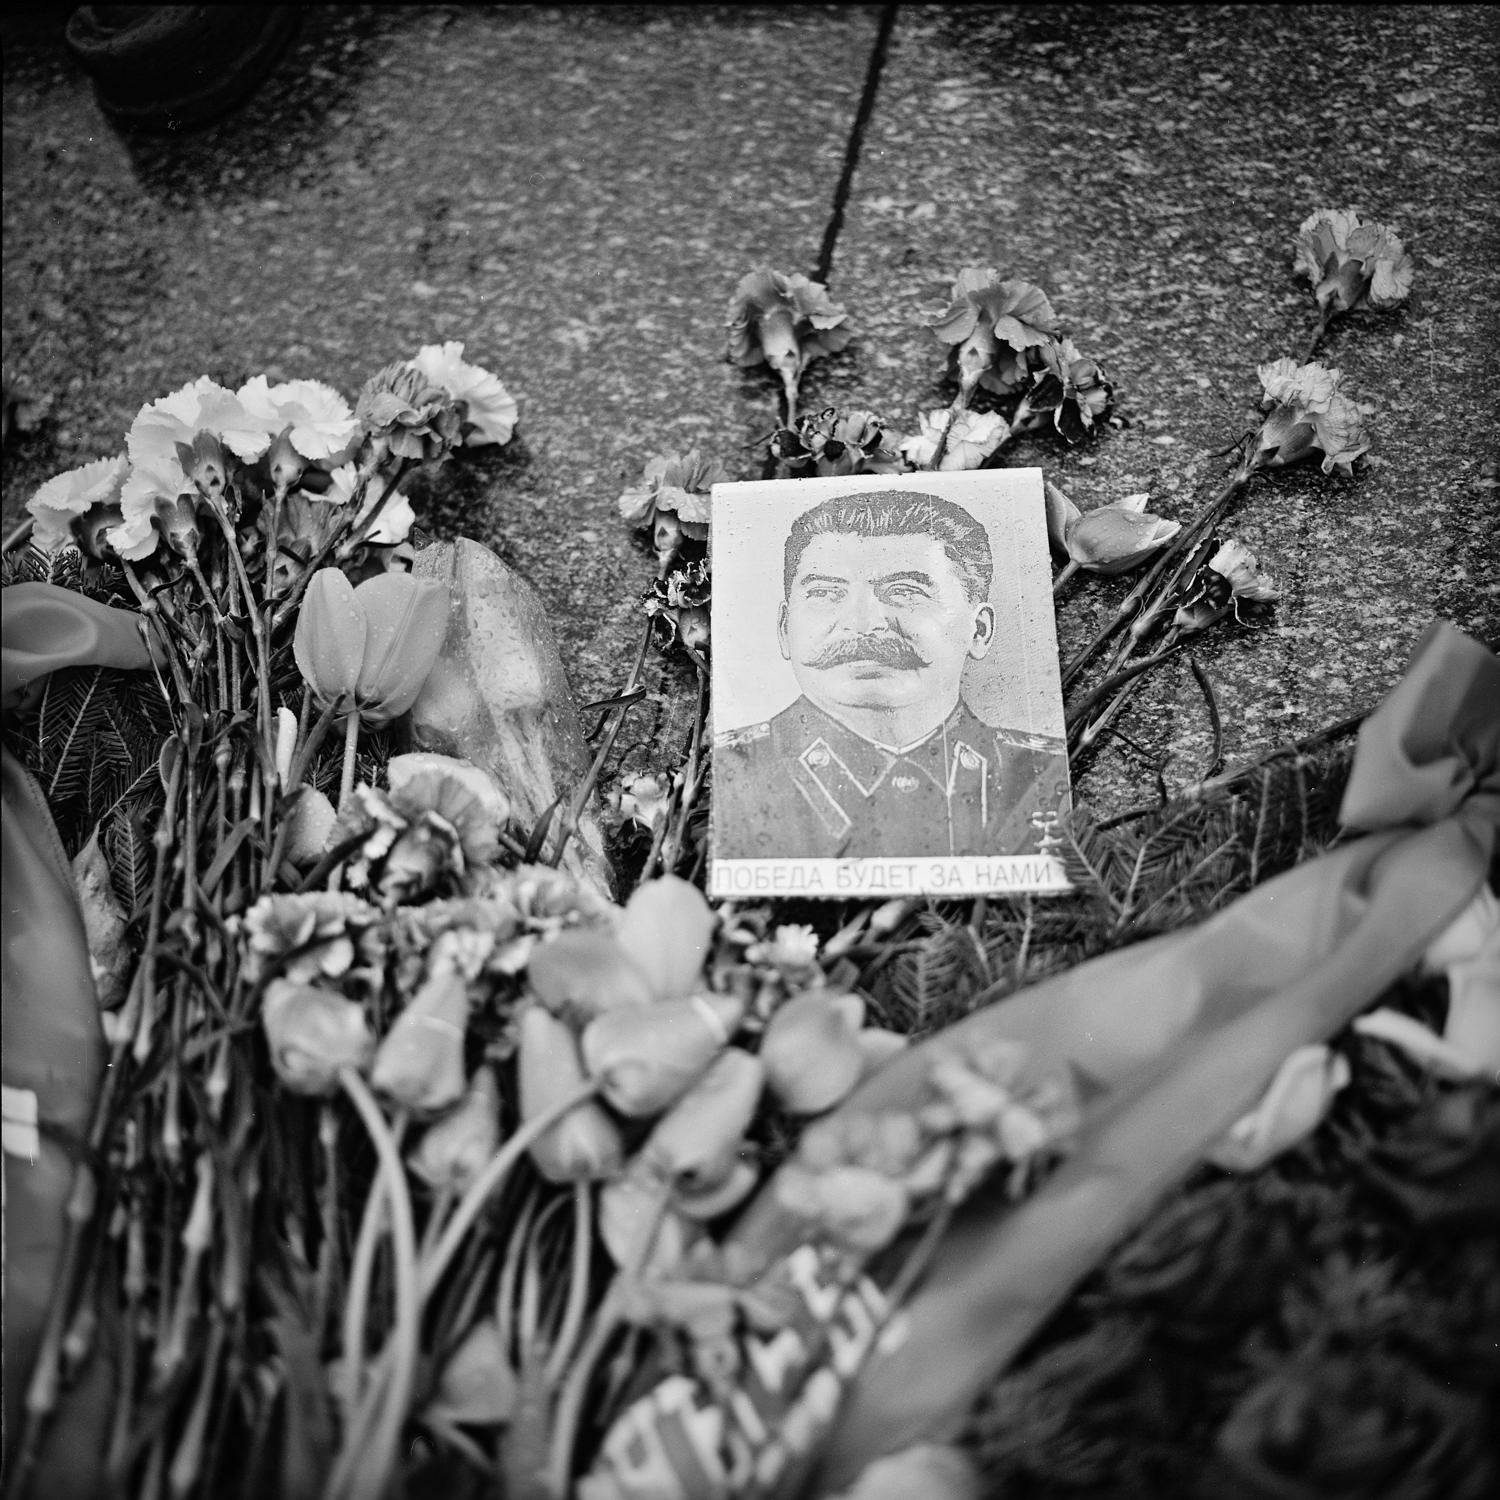 black-and-white photograph of Stalin and bouquets of flowers lie near the eternal flame in memory of victory over Nazi Germany